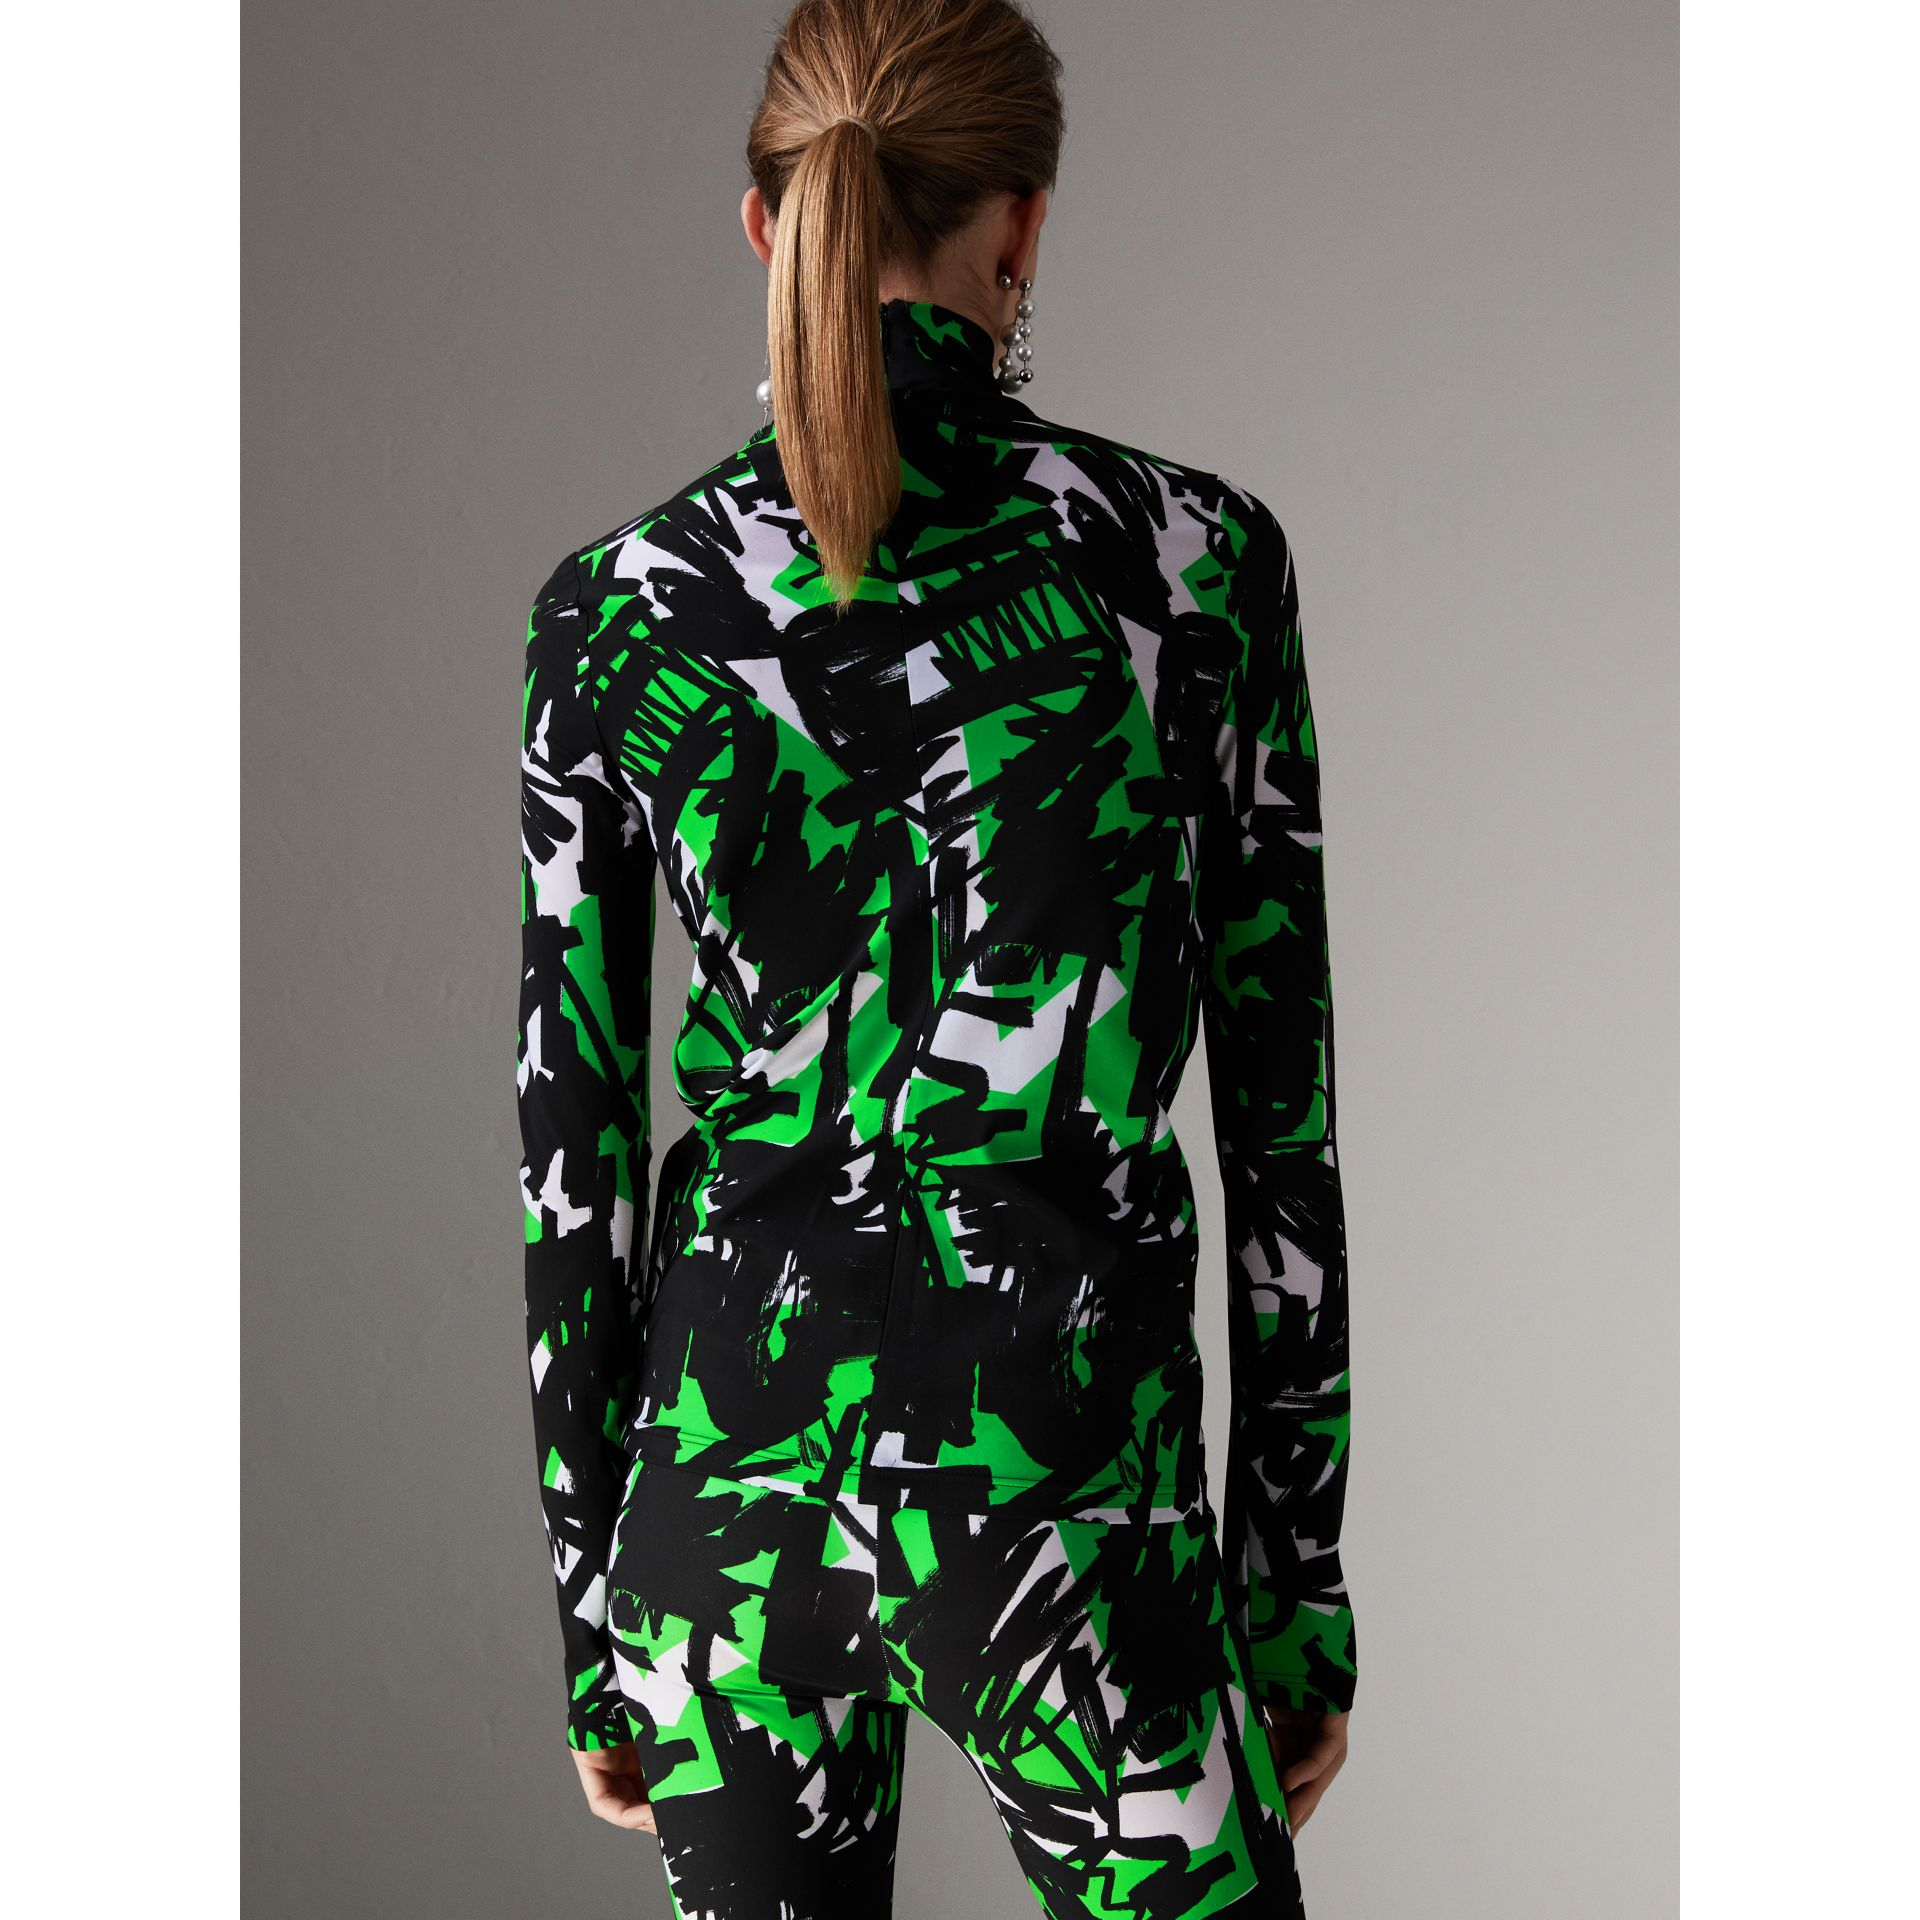 Graffiti Print Stretch Jersey Top in Neon Green - Women | Burberry - gallery image 2